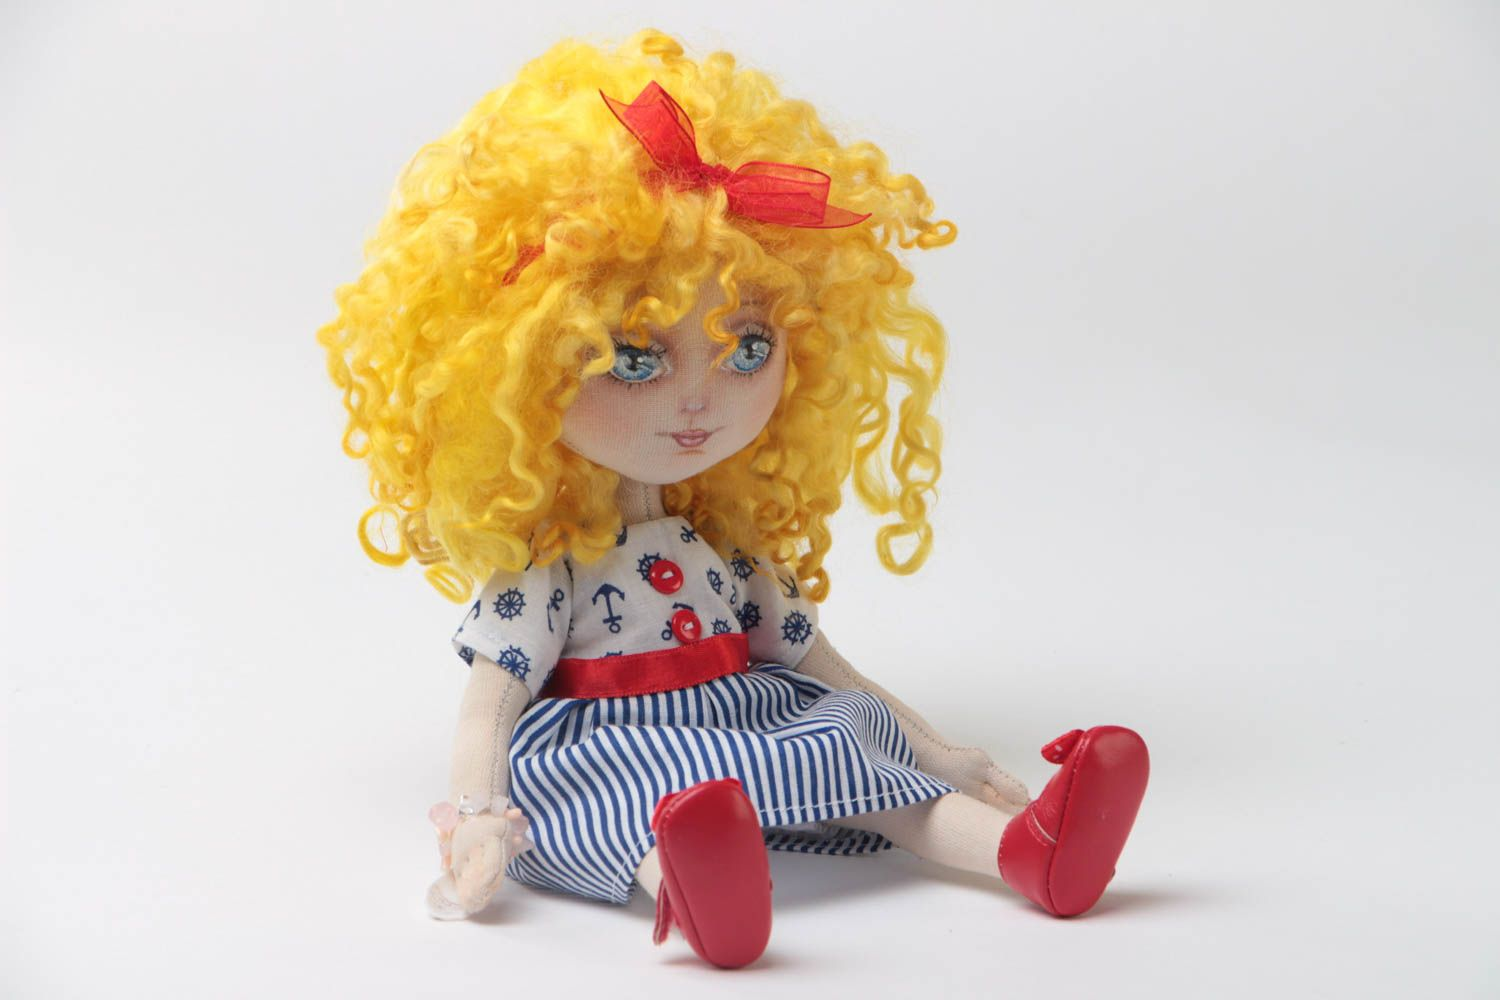 Handmade designer small fabric soft doll in blue striped dress and red shoes photo 2